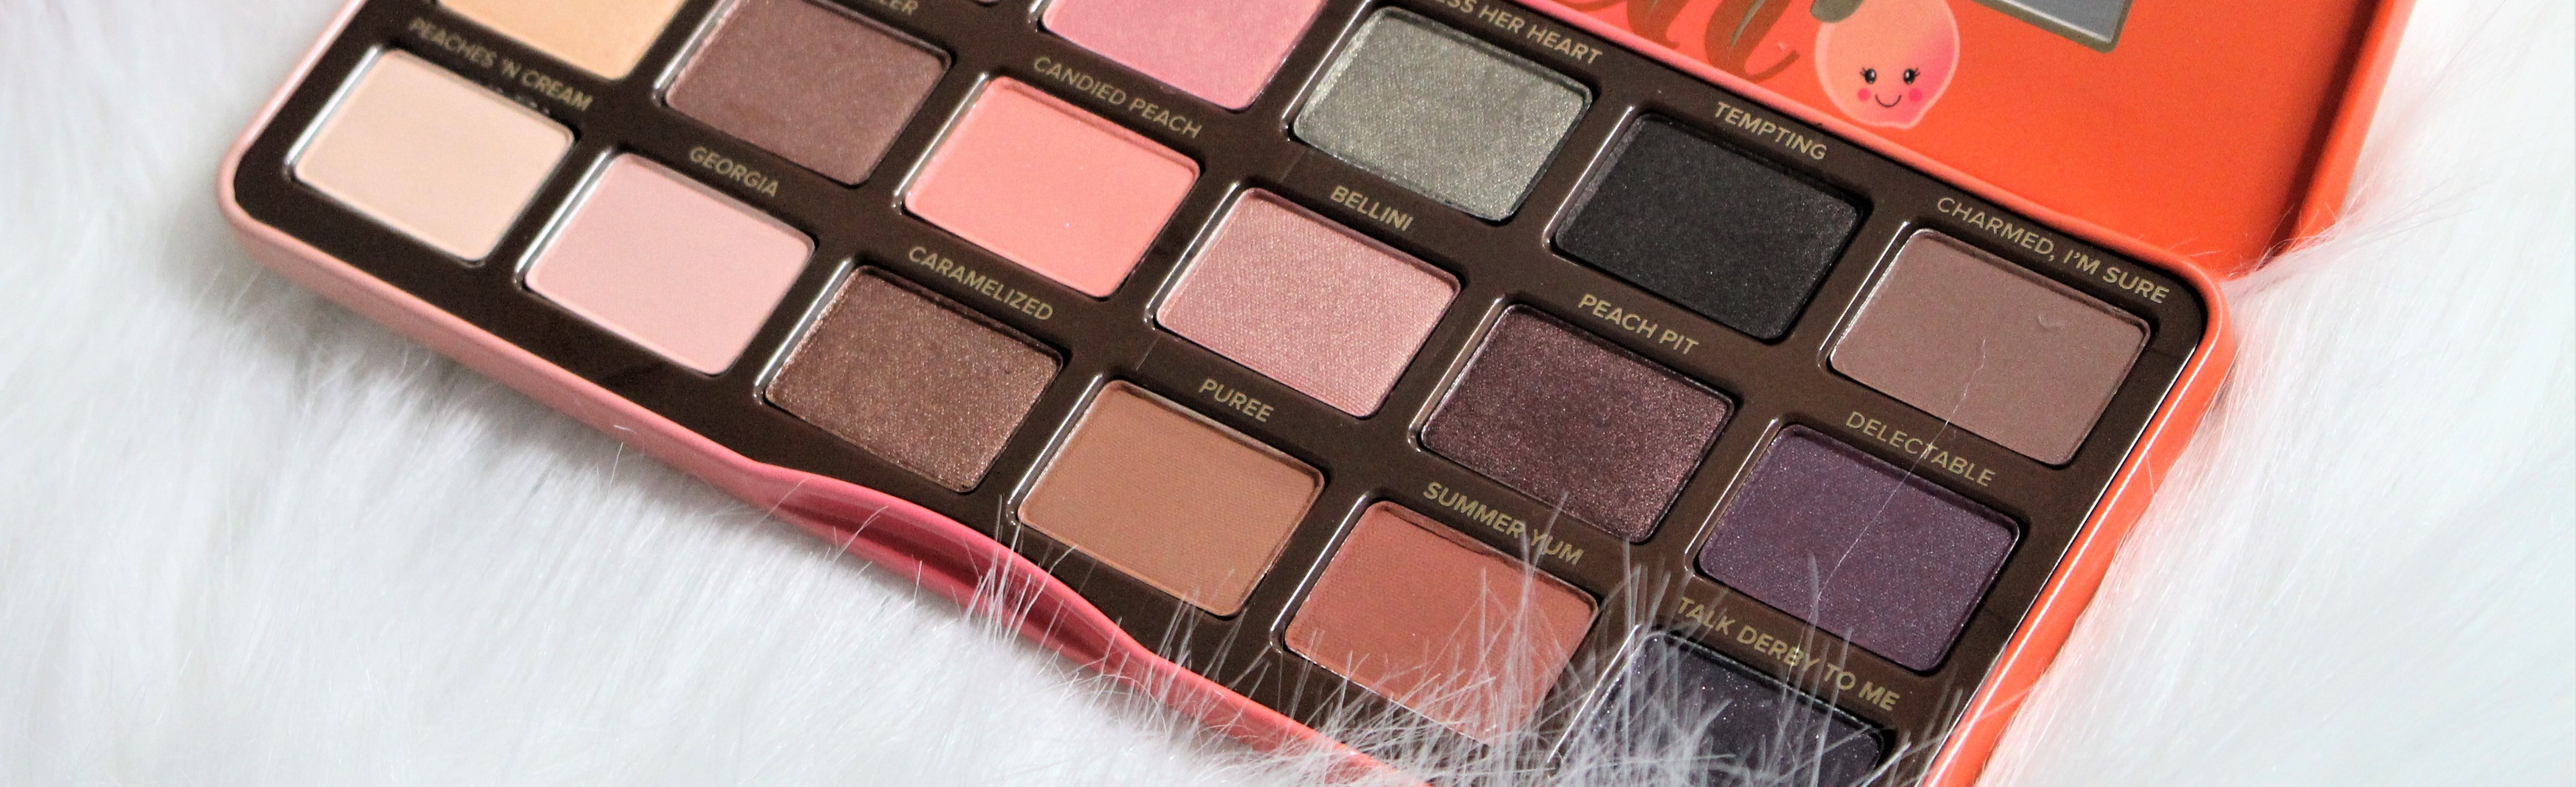 Too Faced Sweet Peach eyeshadow palette | Review & make-up look